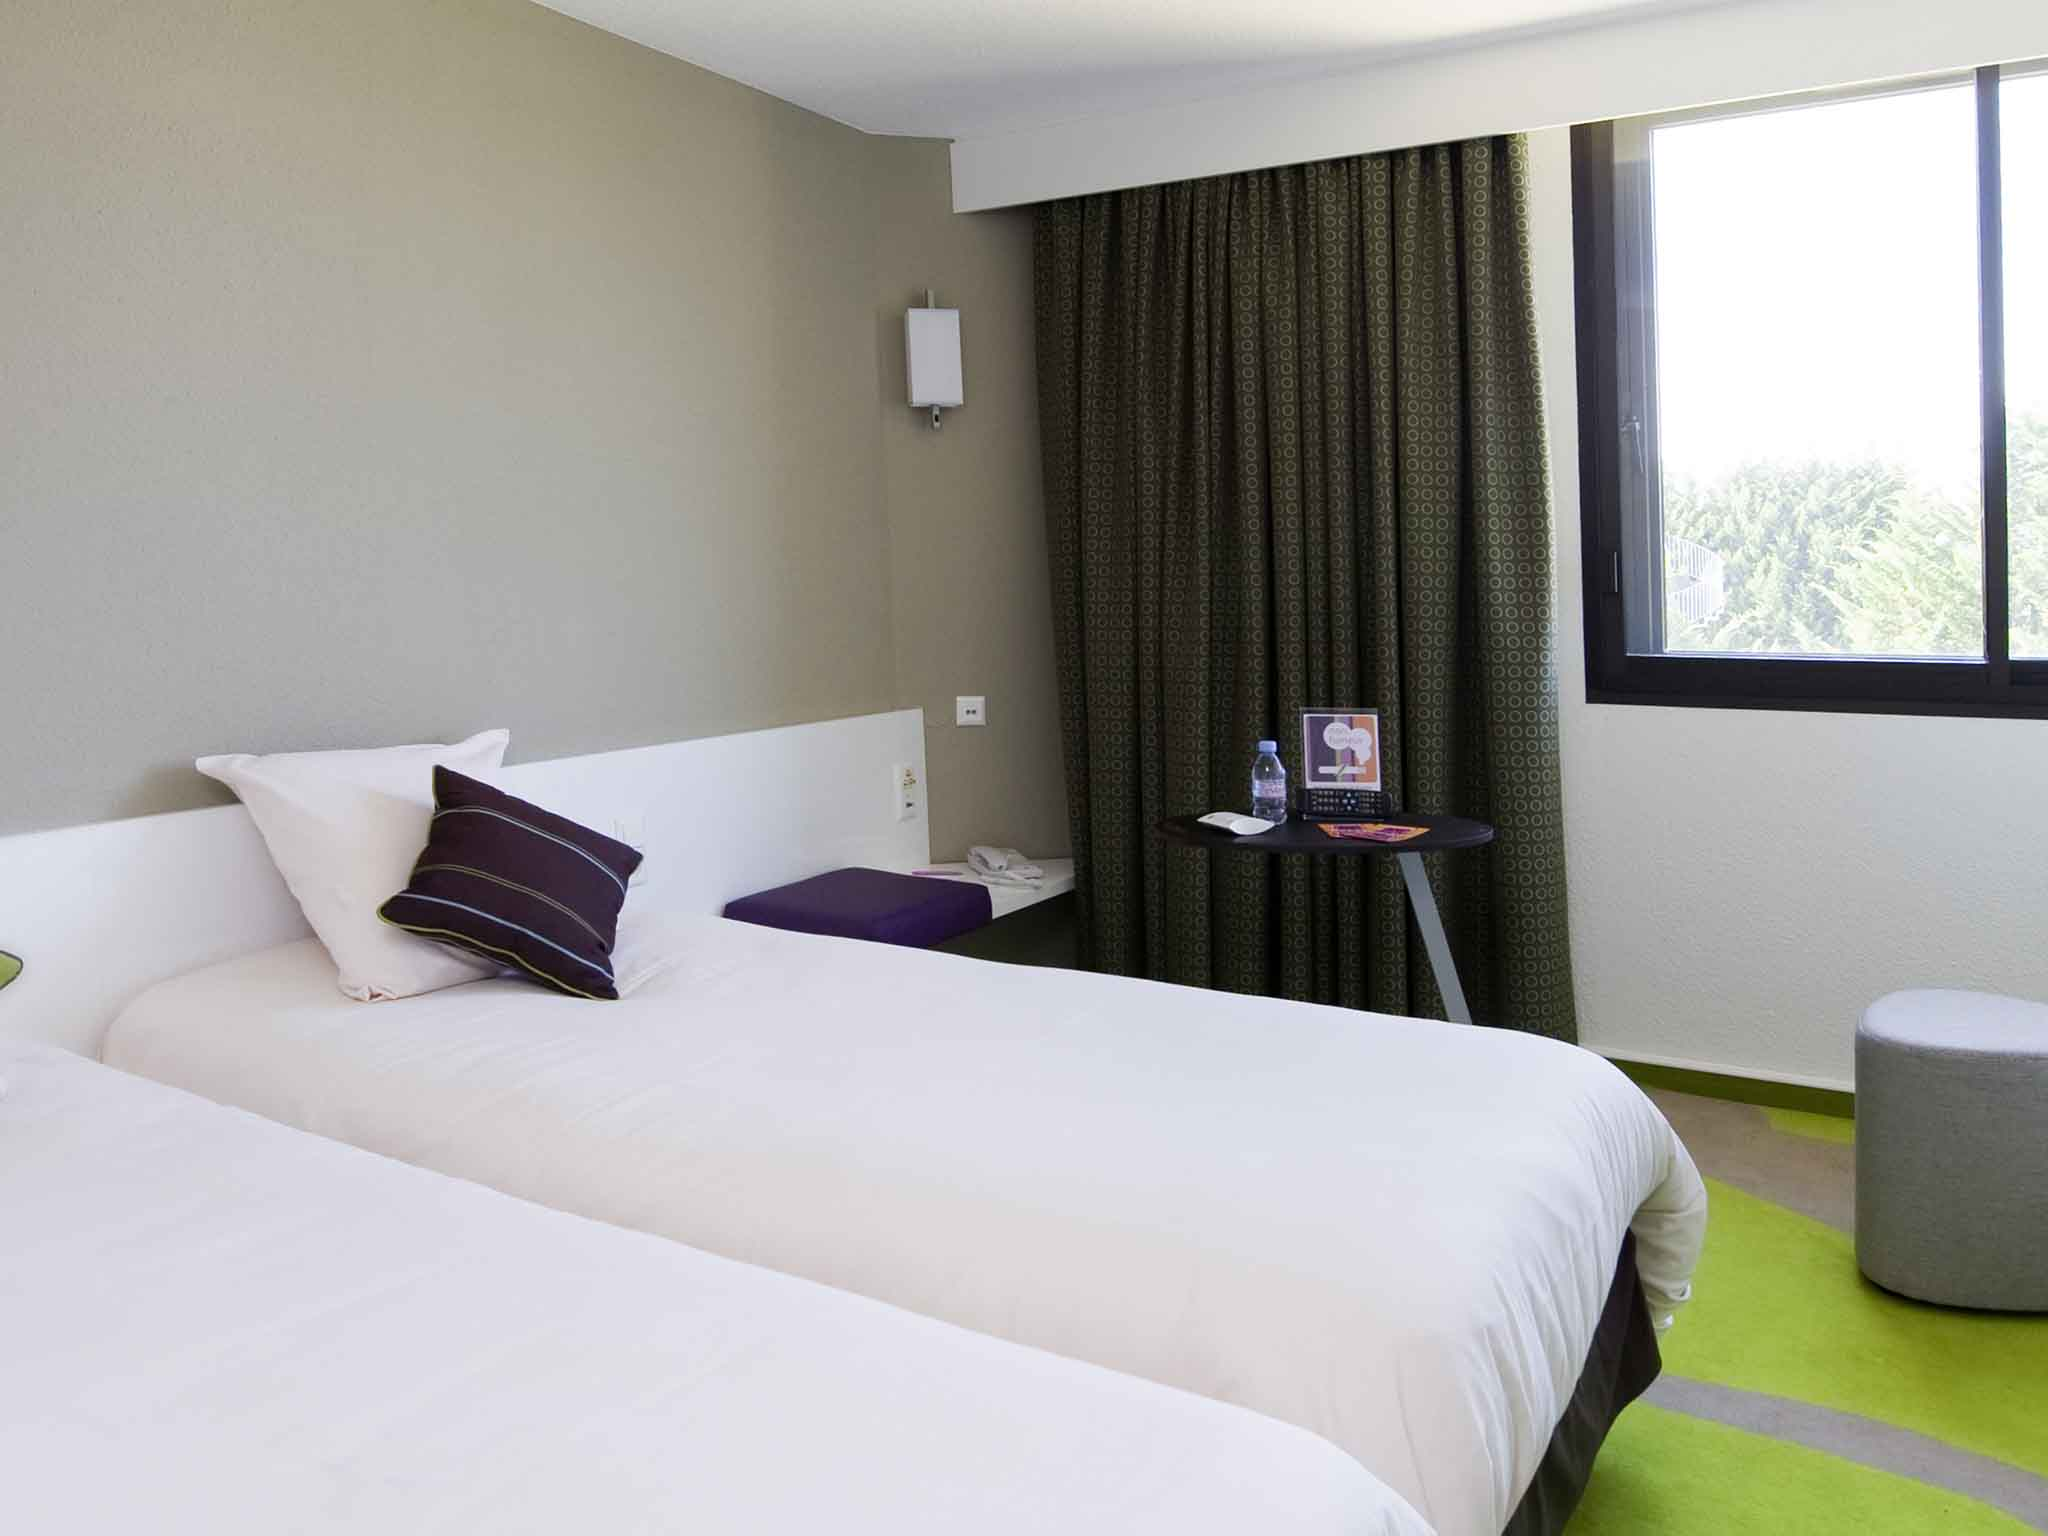 hotel a merignac ibis styles bordeaux aeroport. Black Bedroom Furniture Sets. Home Design Ideas